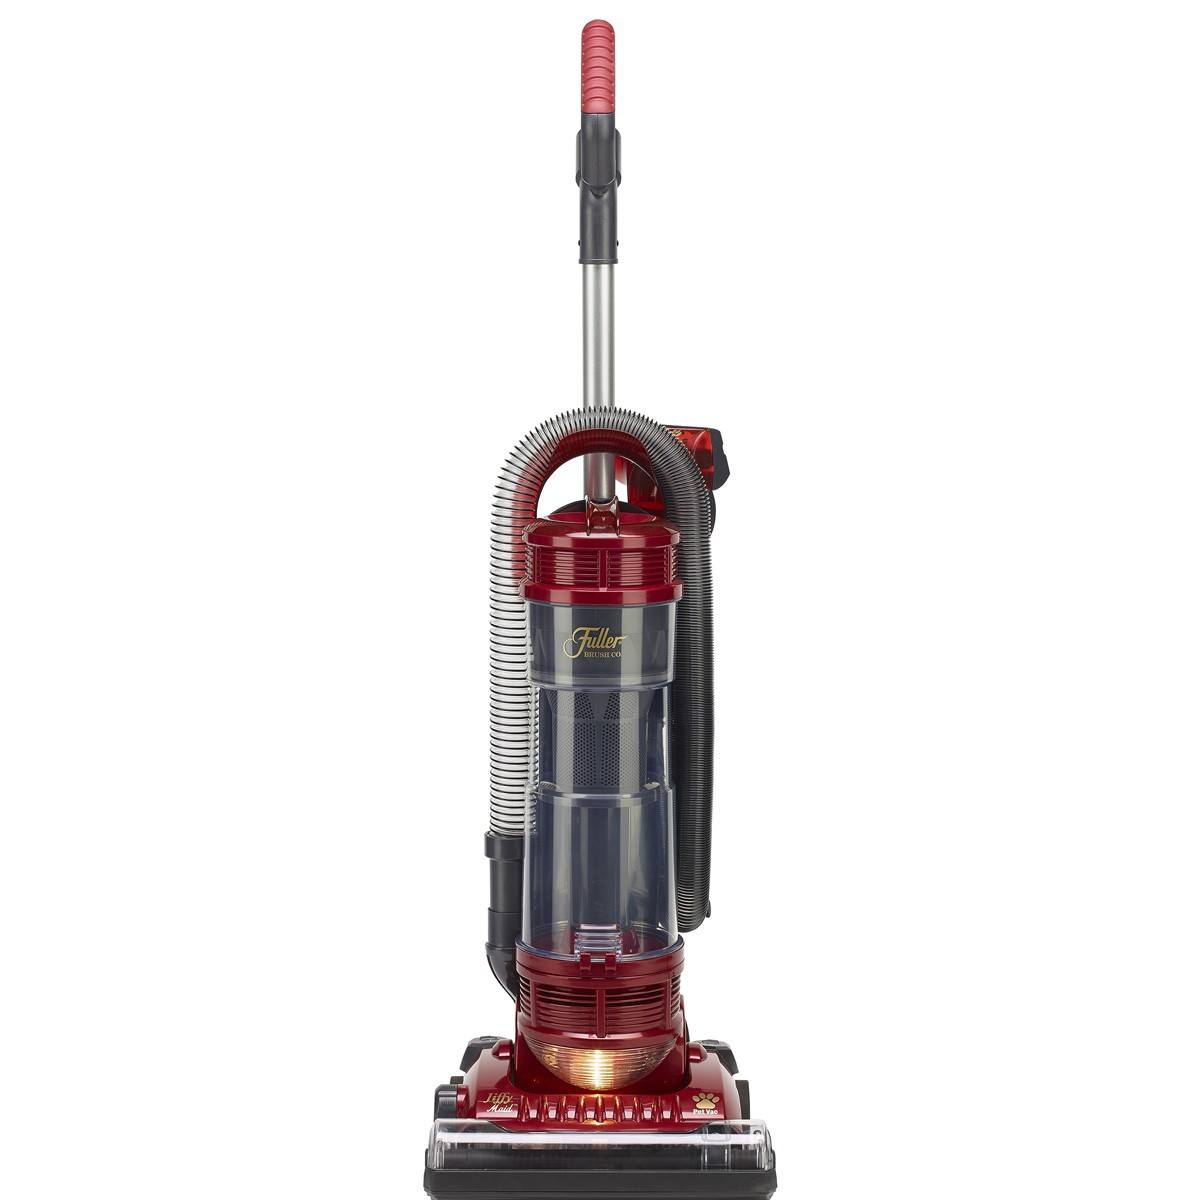 Fuller Brush Jiffy Maid Bagless Pet Vacuum Cleaner